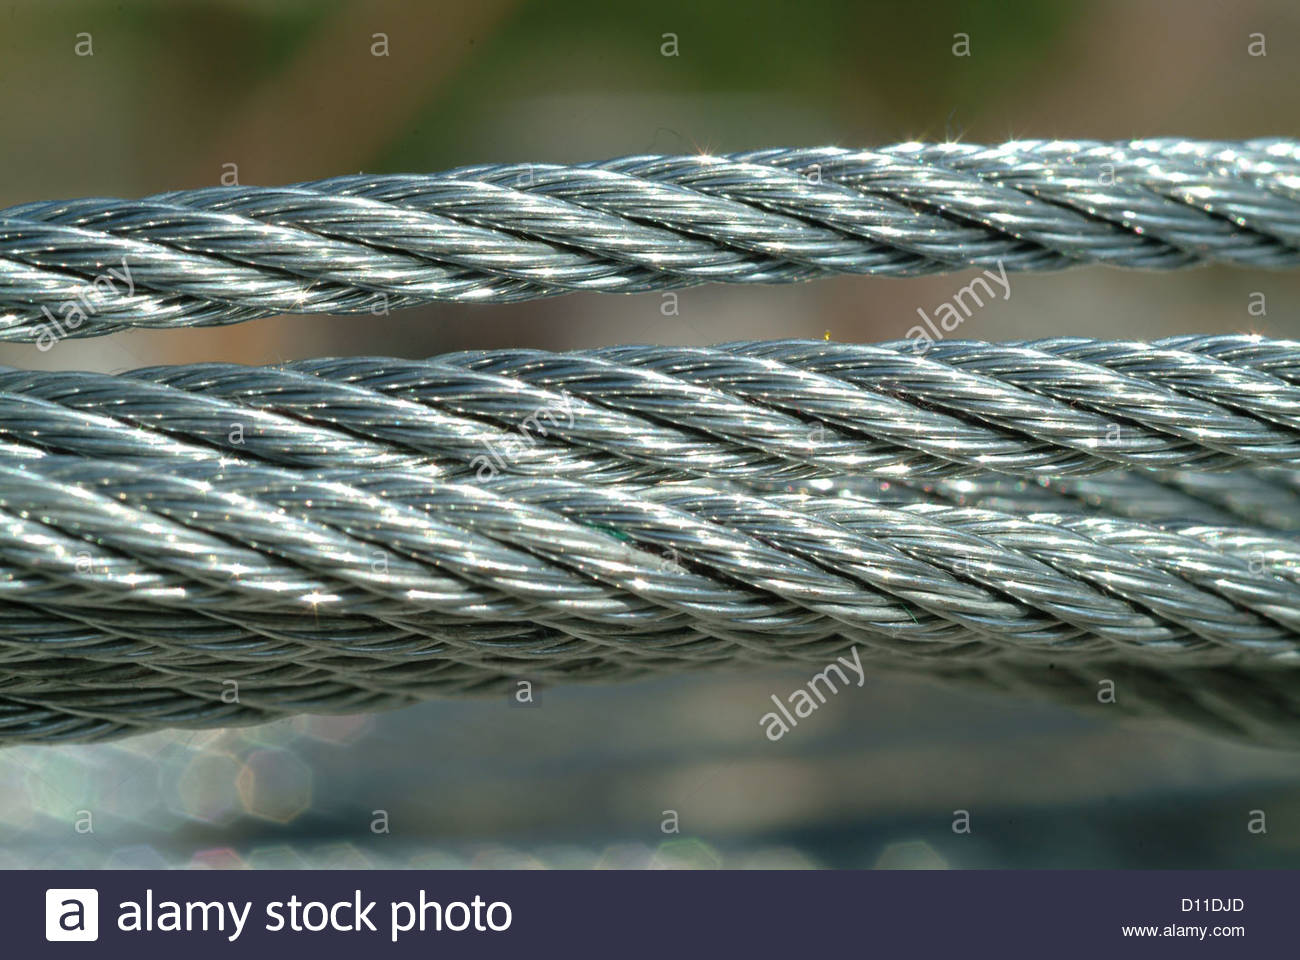 Old Fencing Tools Stock Photos & Old Fencing Tools Stock Images - Alamy